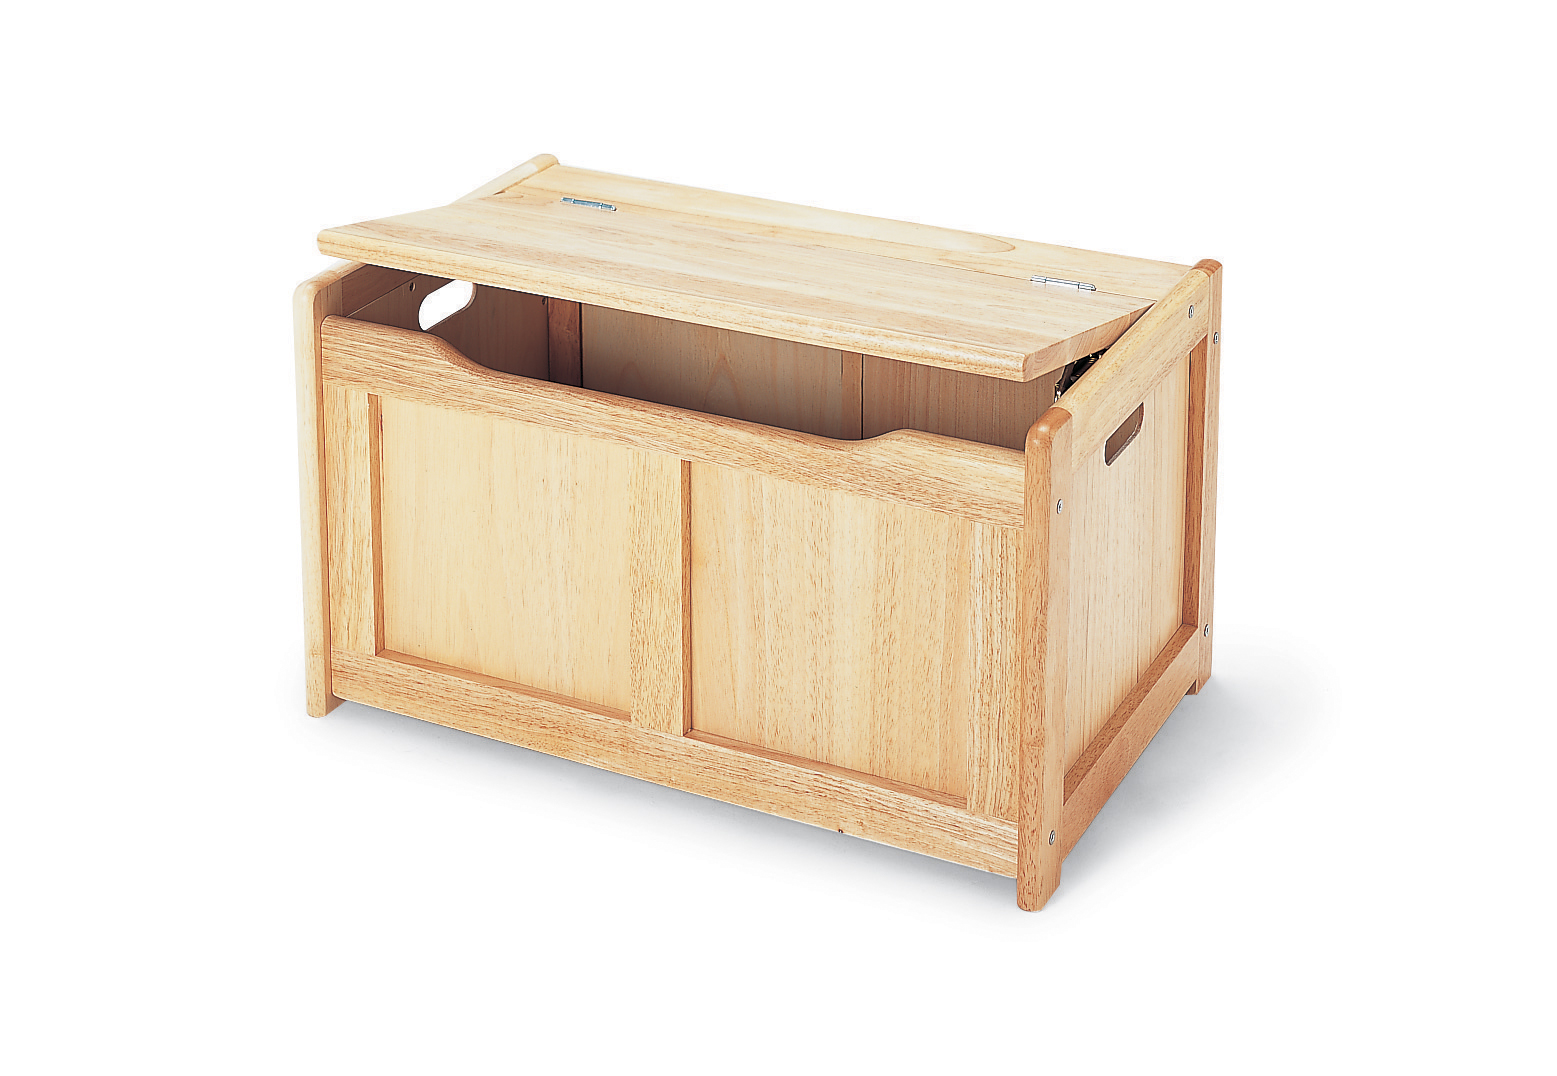 Best Toy Boxes And Chests For Kids : Natural wooden toy chest kids storage